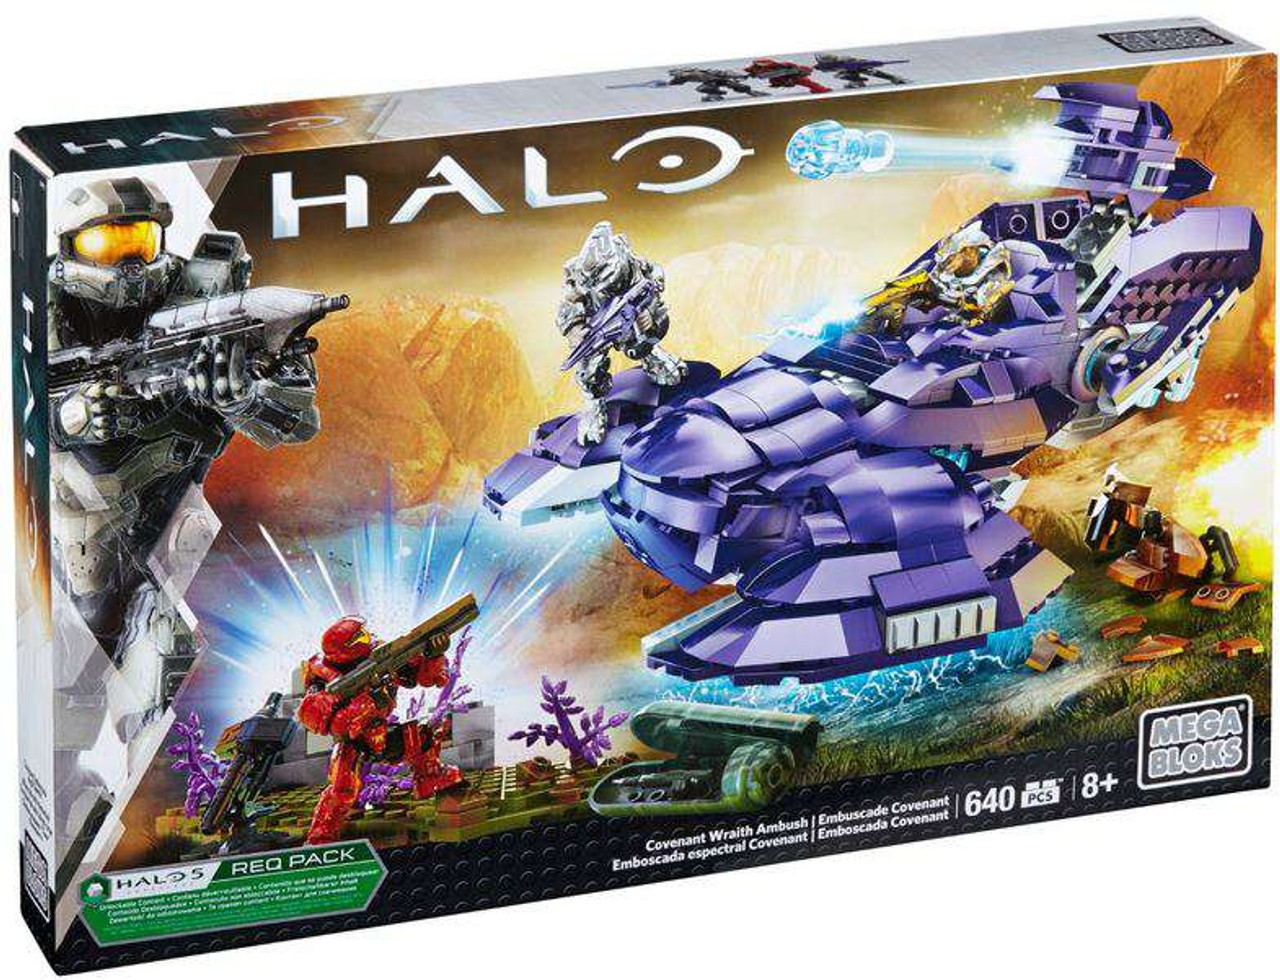 Mega Bloks Halo Covenant Wraith Ambush Set #31844